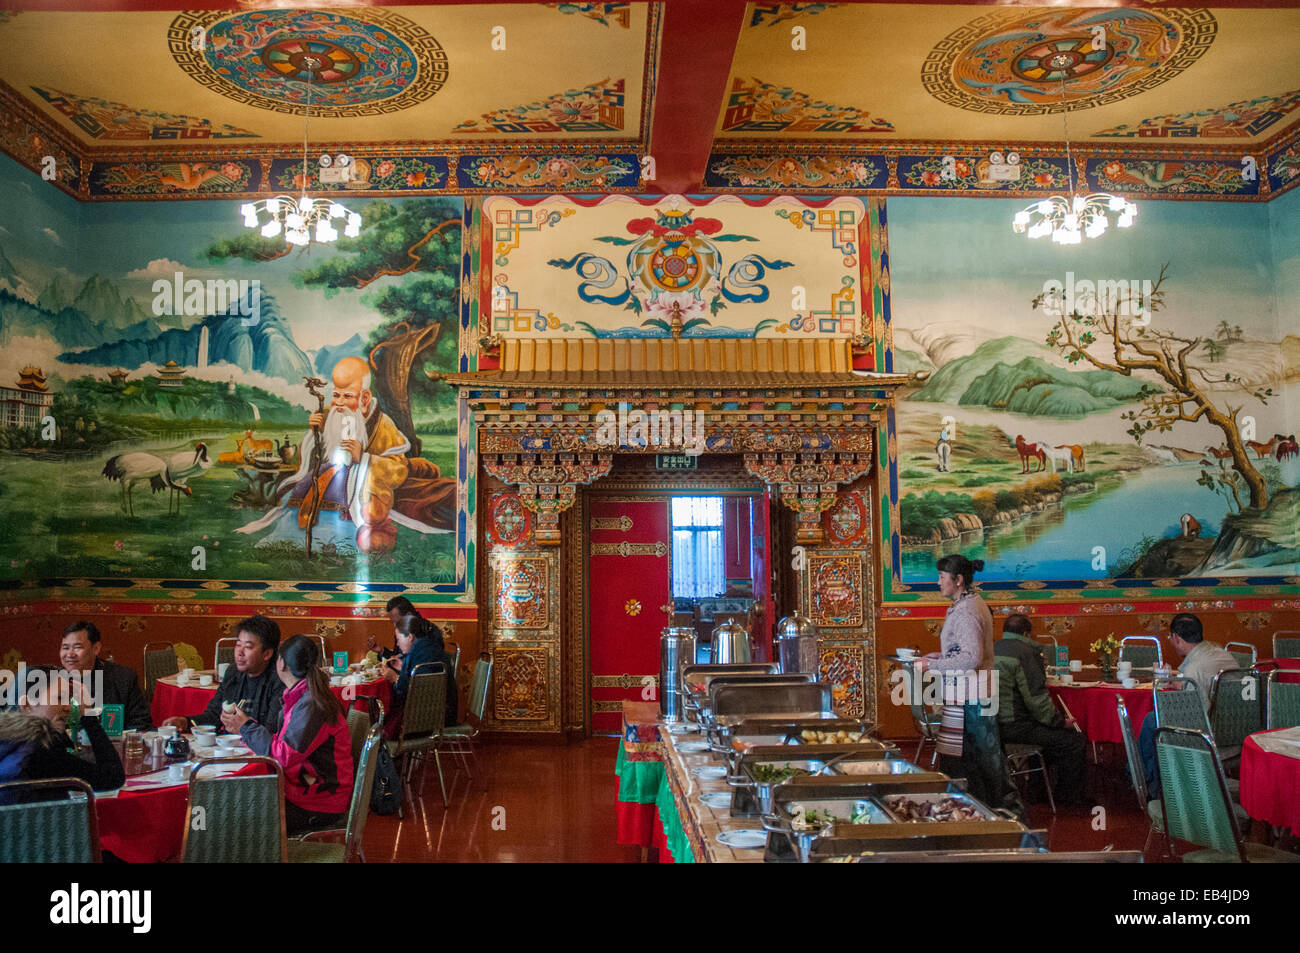 Dining room of the Gyantse Hotel at Gyantse, Tibet, China - Stock Image